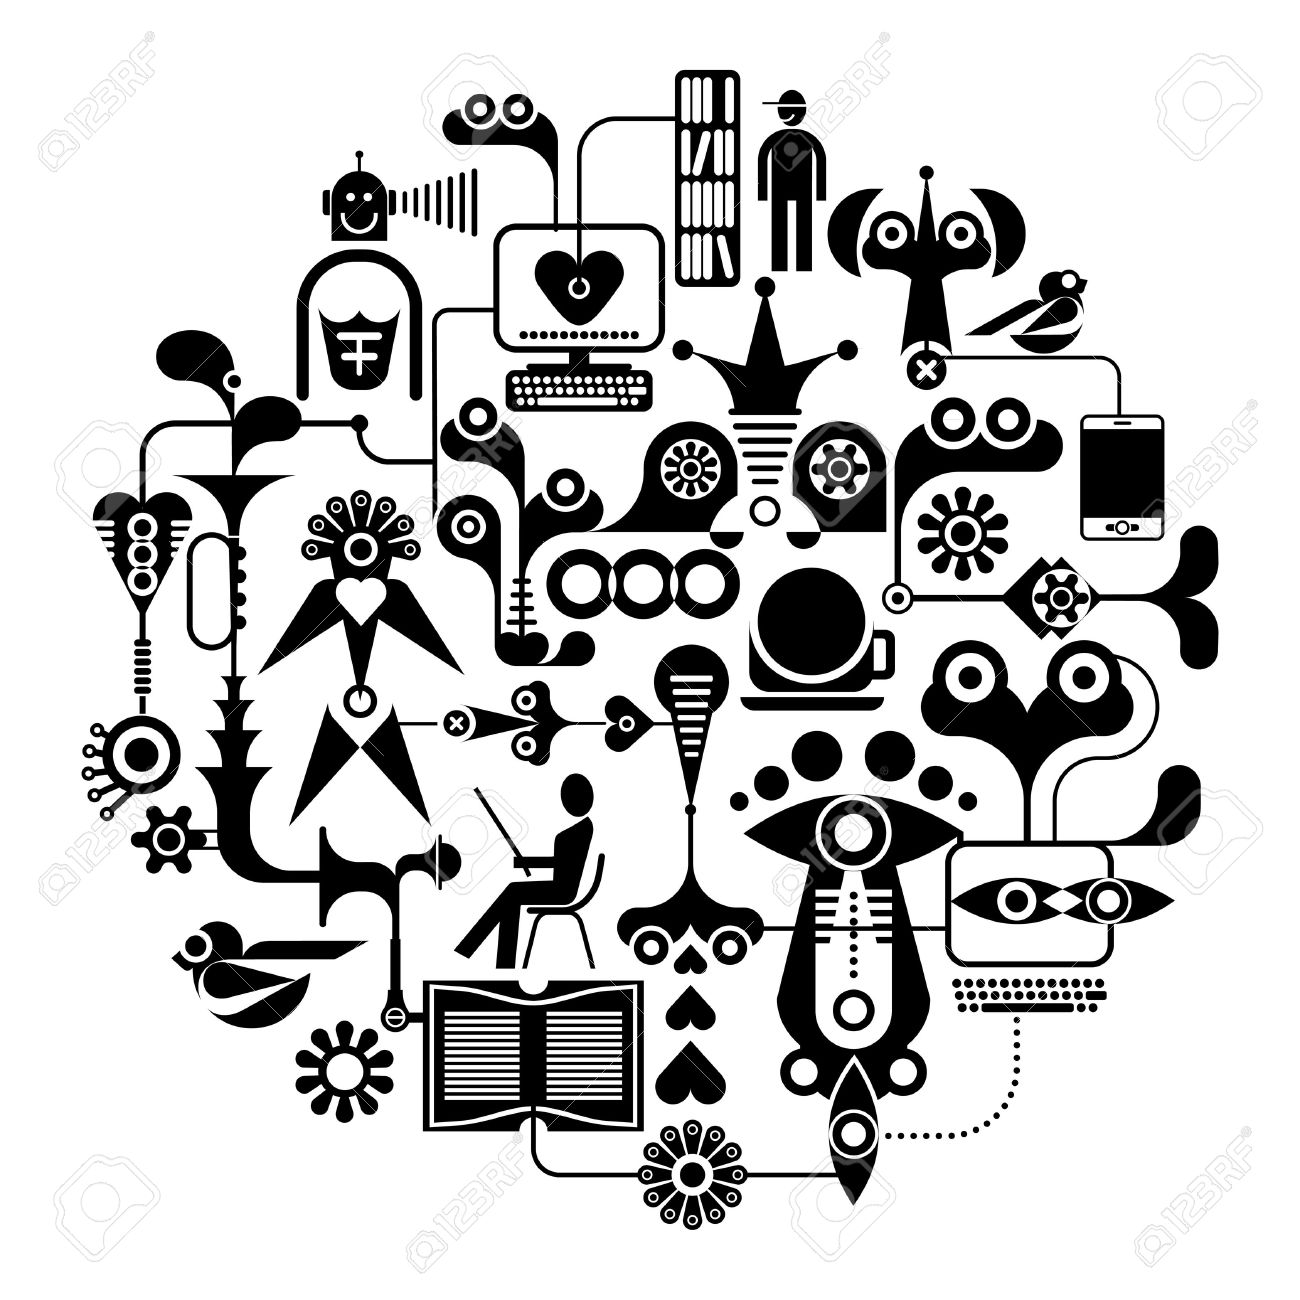 black network clipart